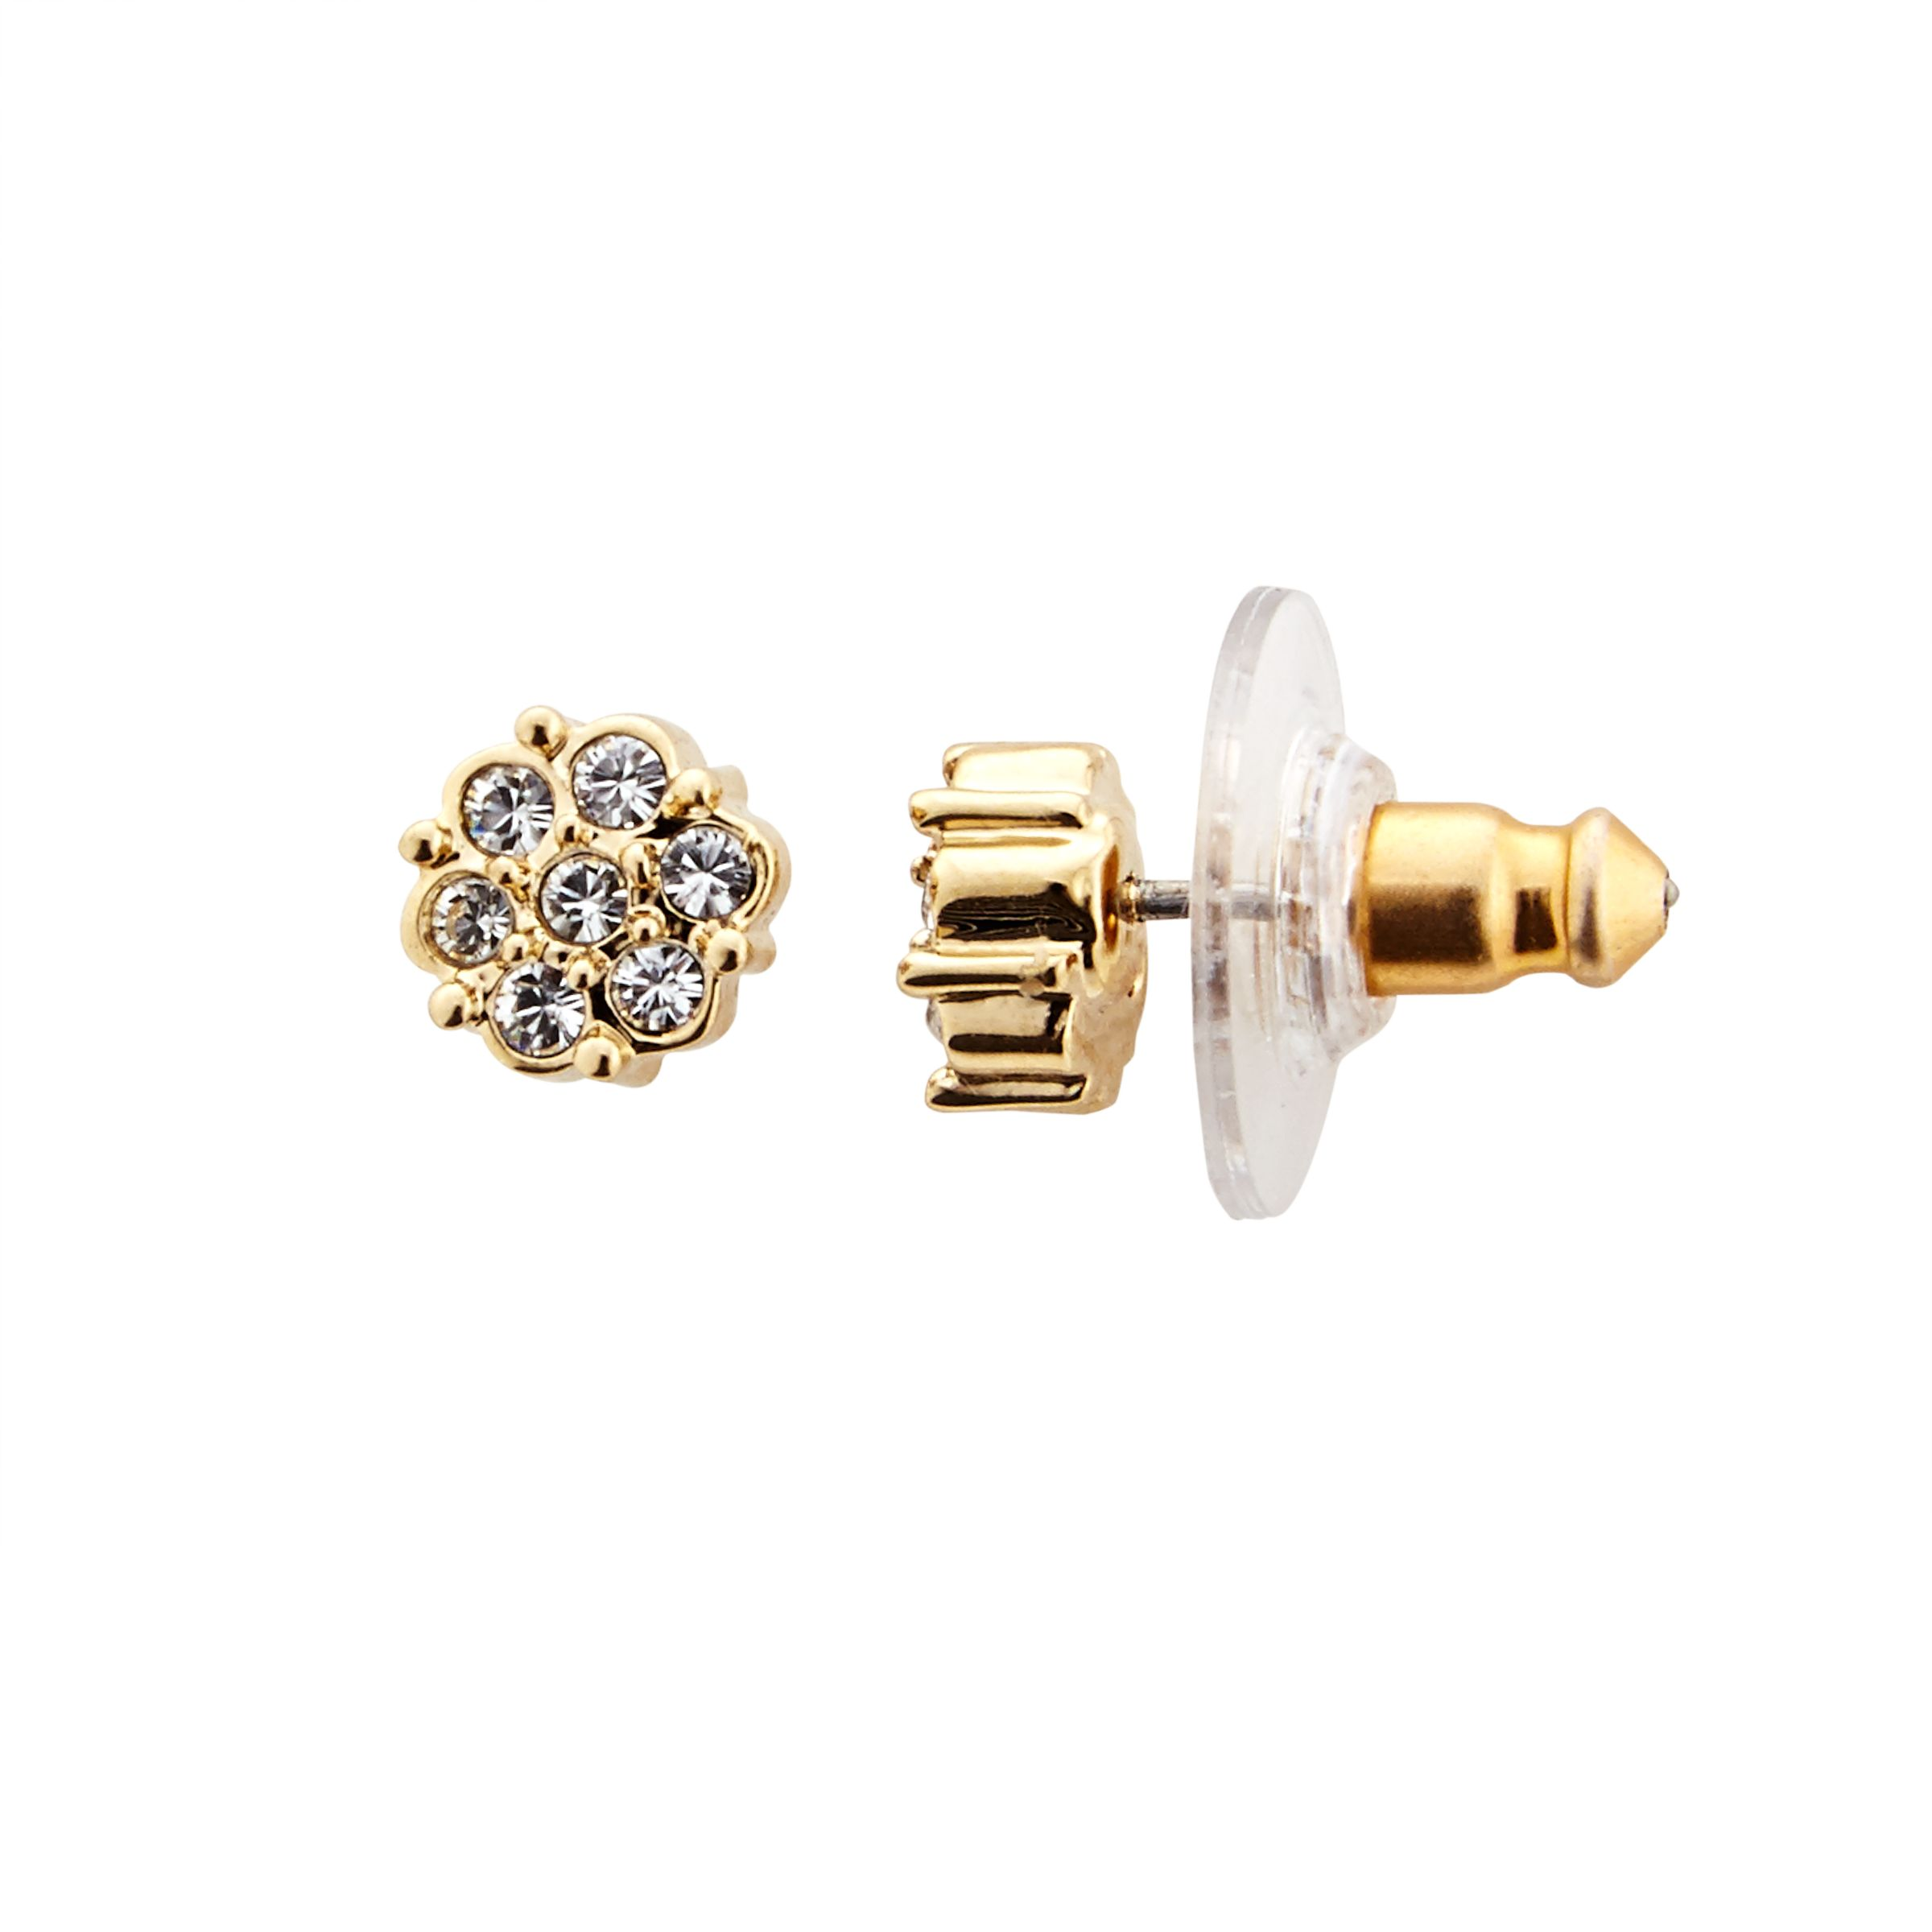 Cachet Cachet Gold Plated Swarovski Crystal Stud Earrings, Gold